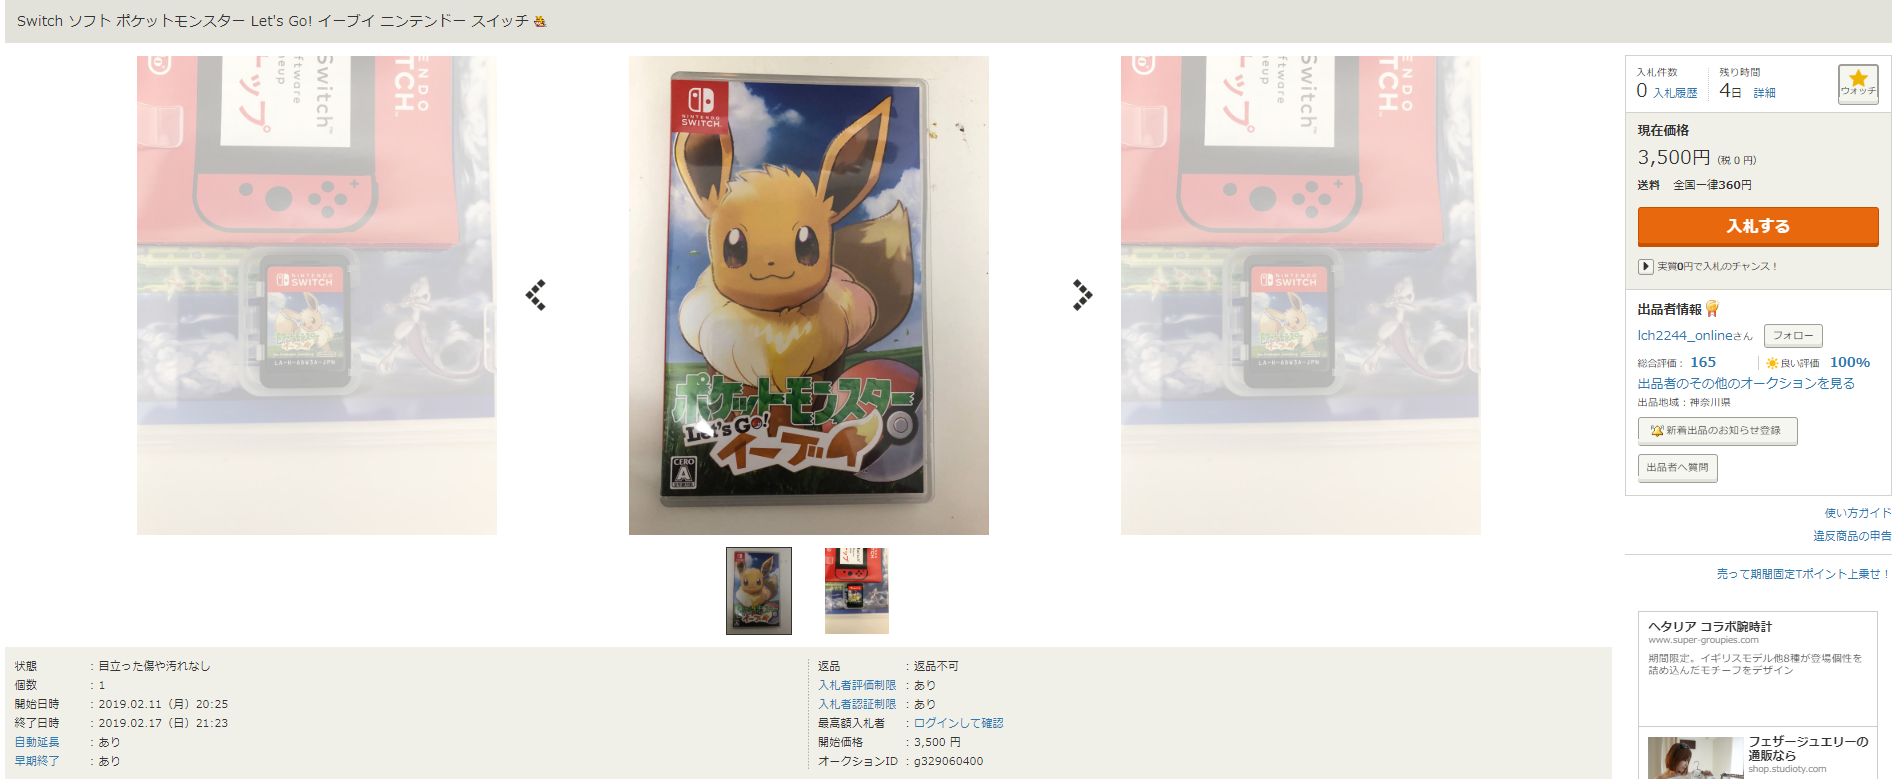 Pokemon let's go Evoli - Yahoo Auctions